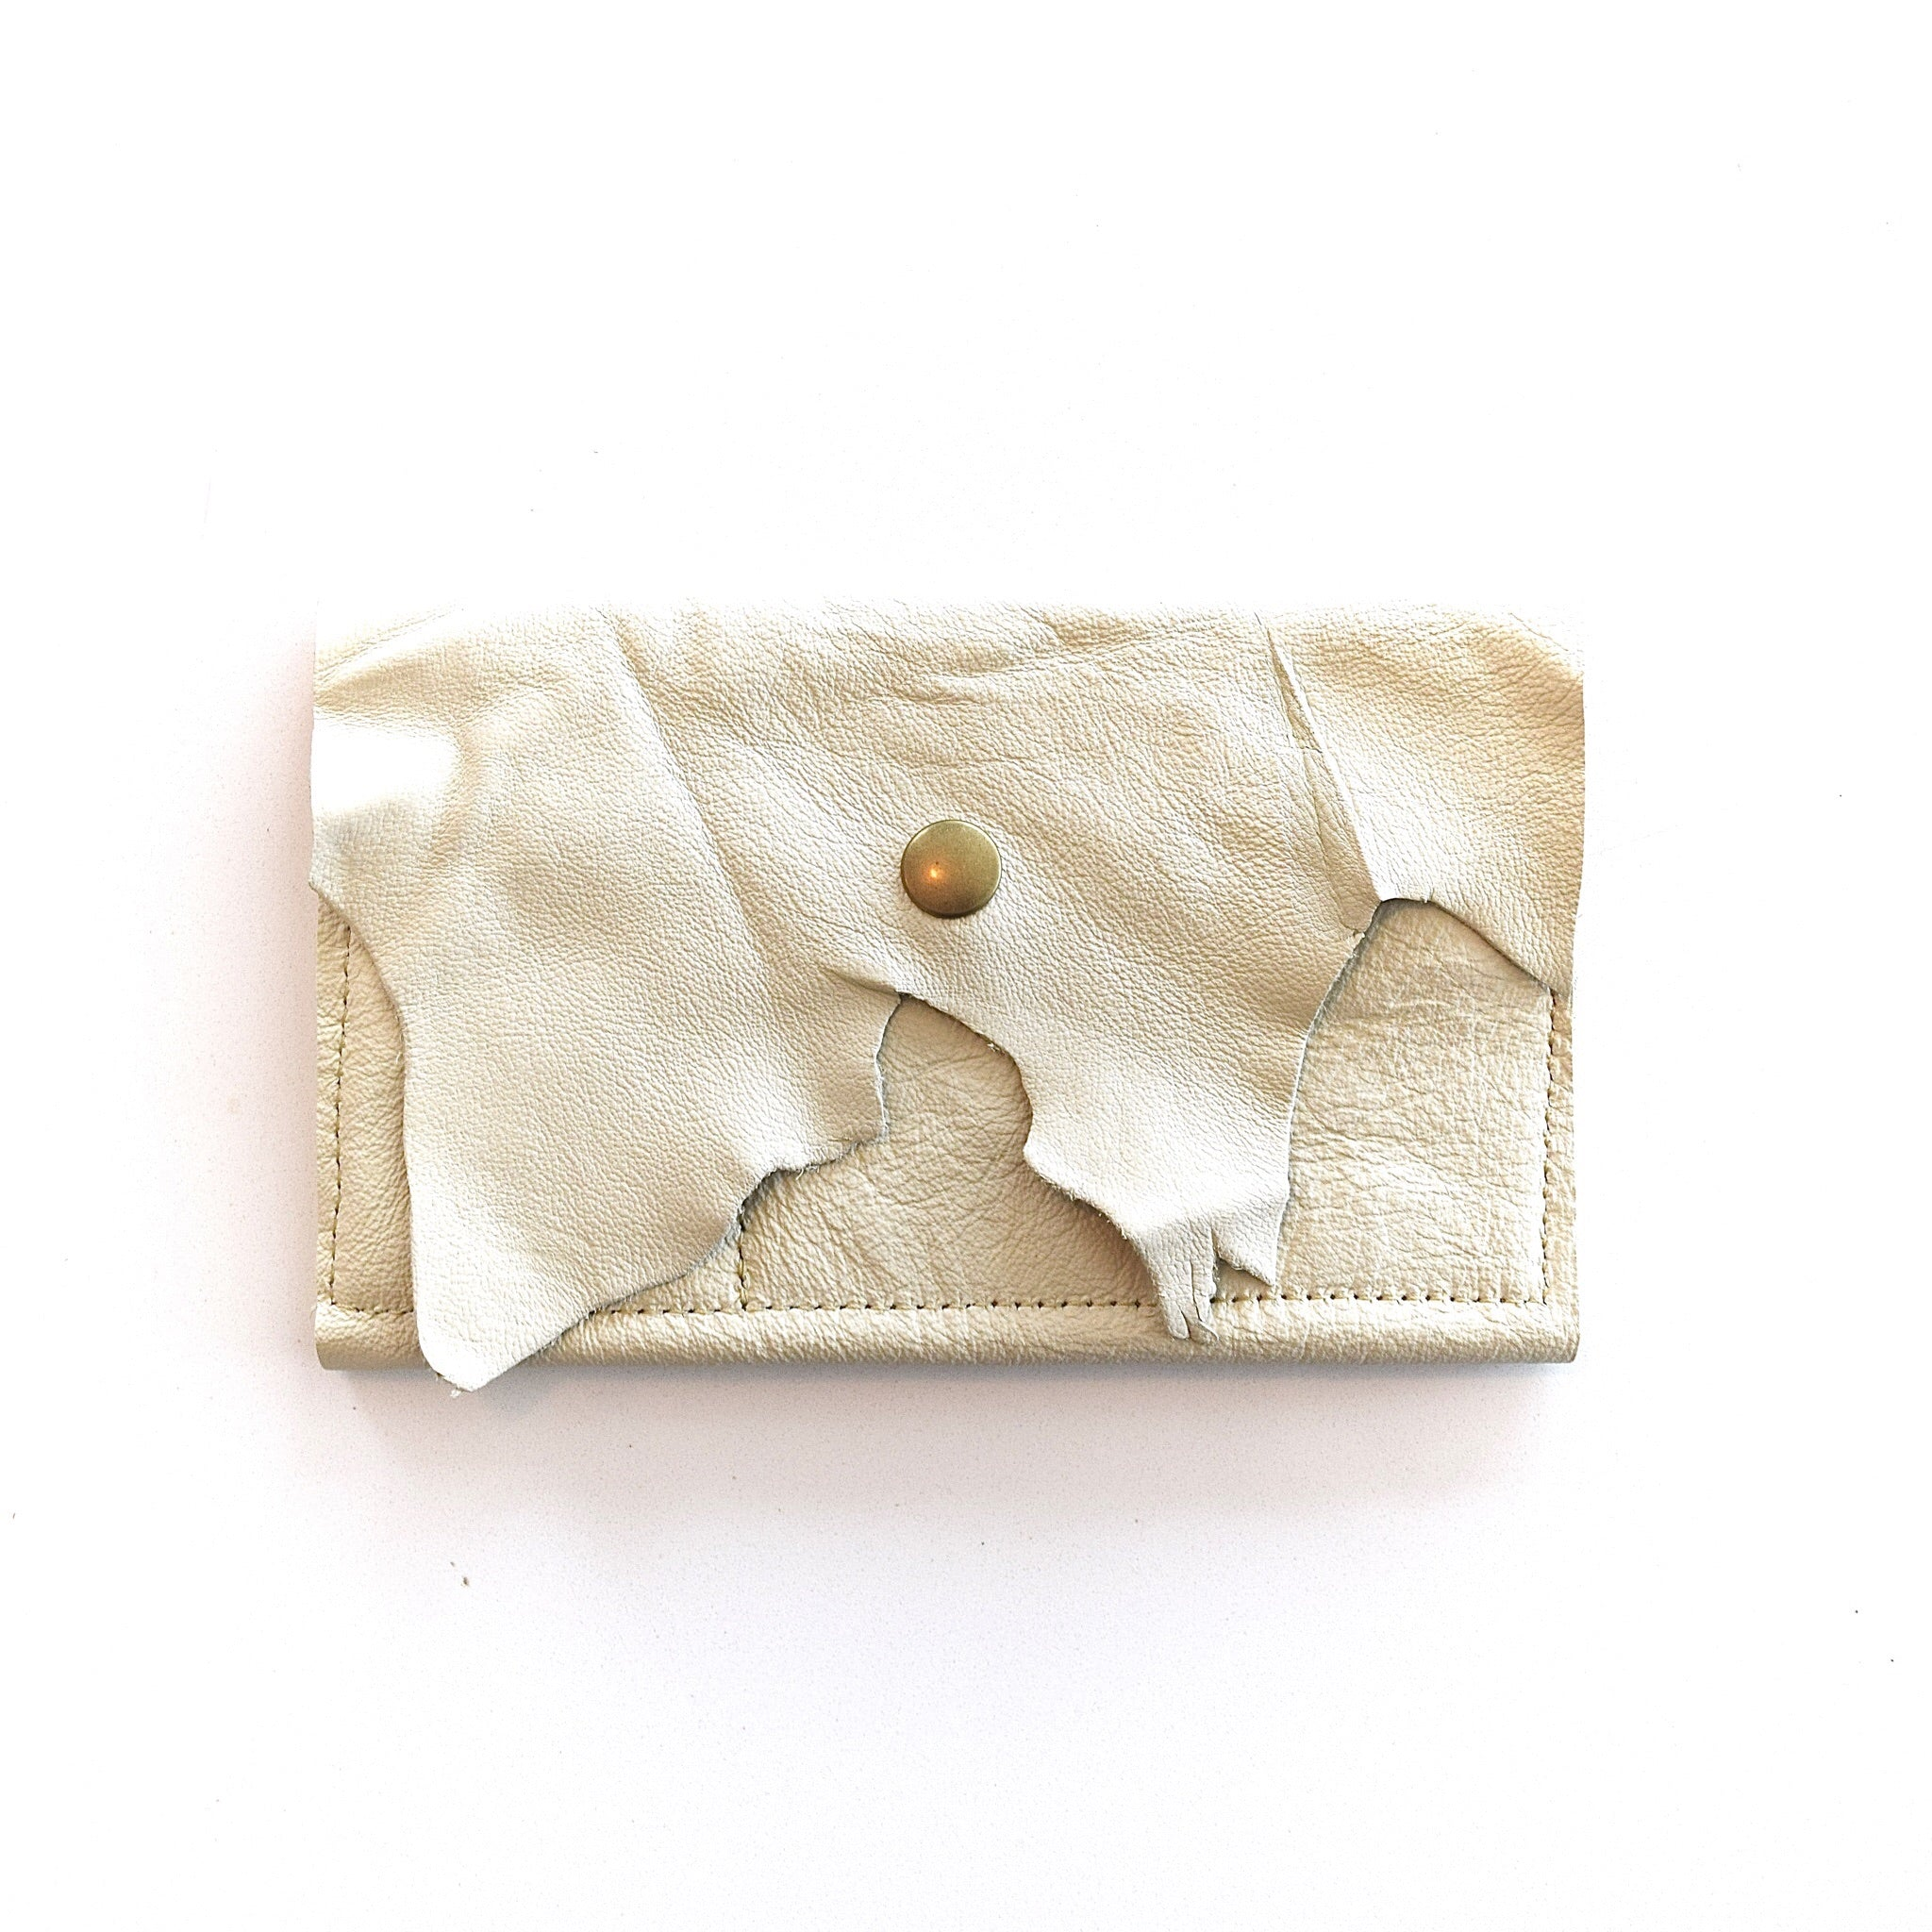 O FRANCISCO - leather wallet - cream